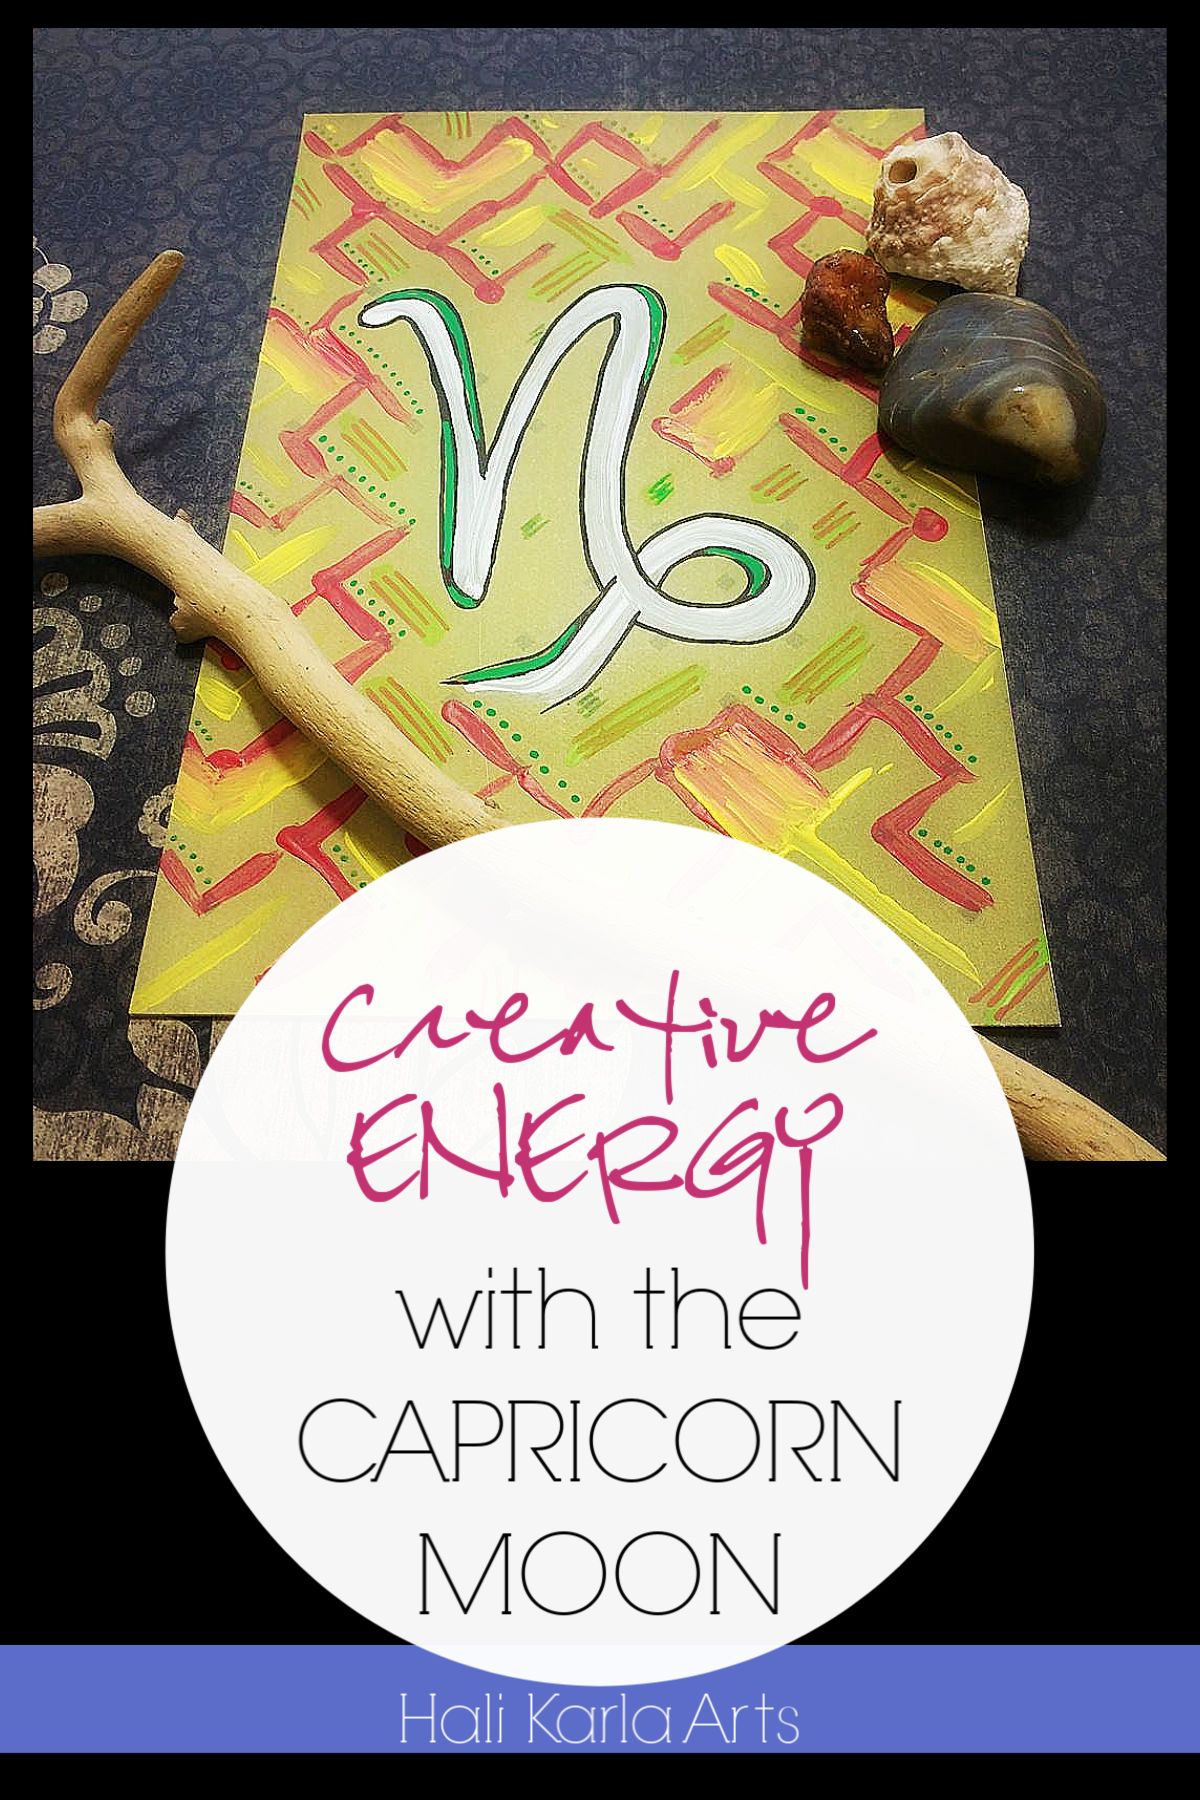 Creative Energy focus when the Moon is the the sign of CAPRICORN | Hali Karla Arts